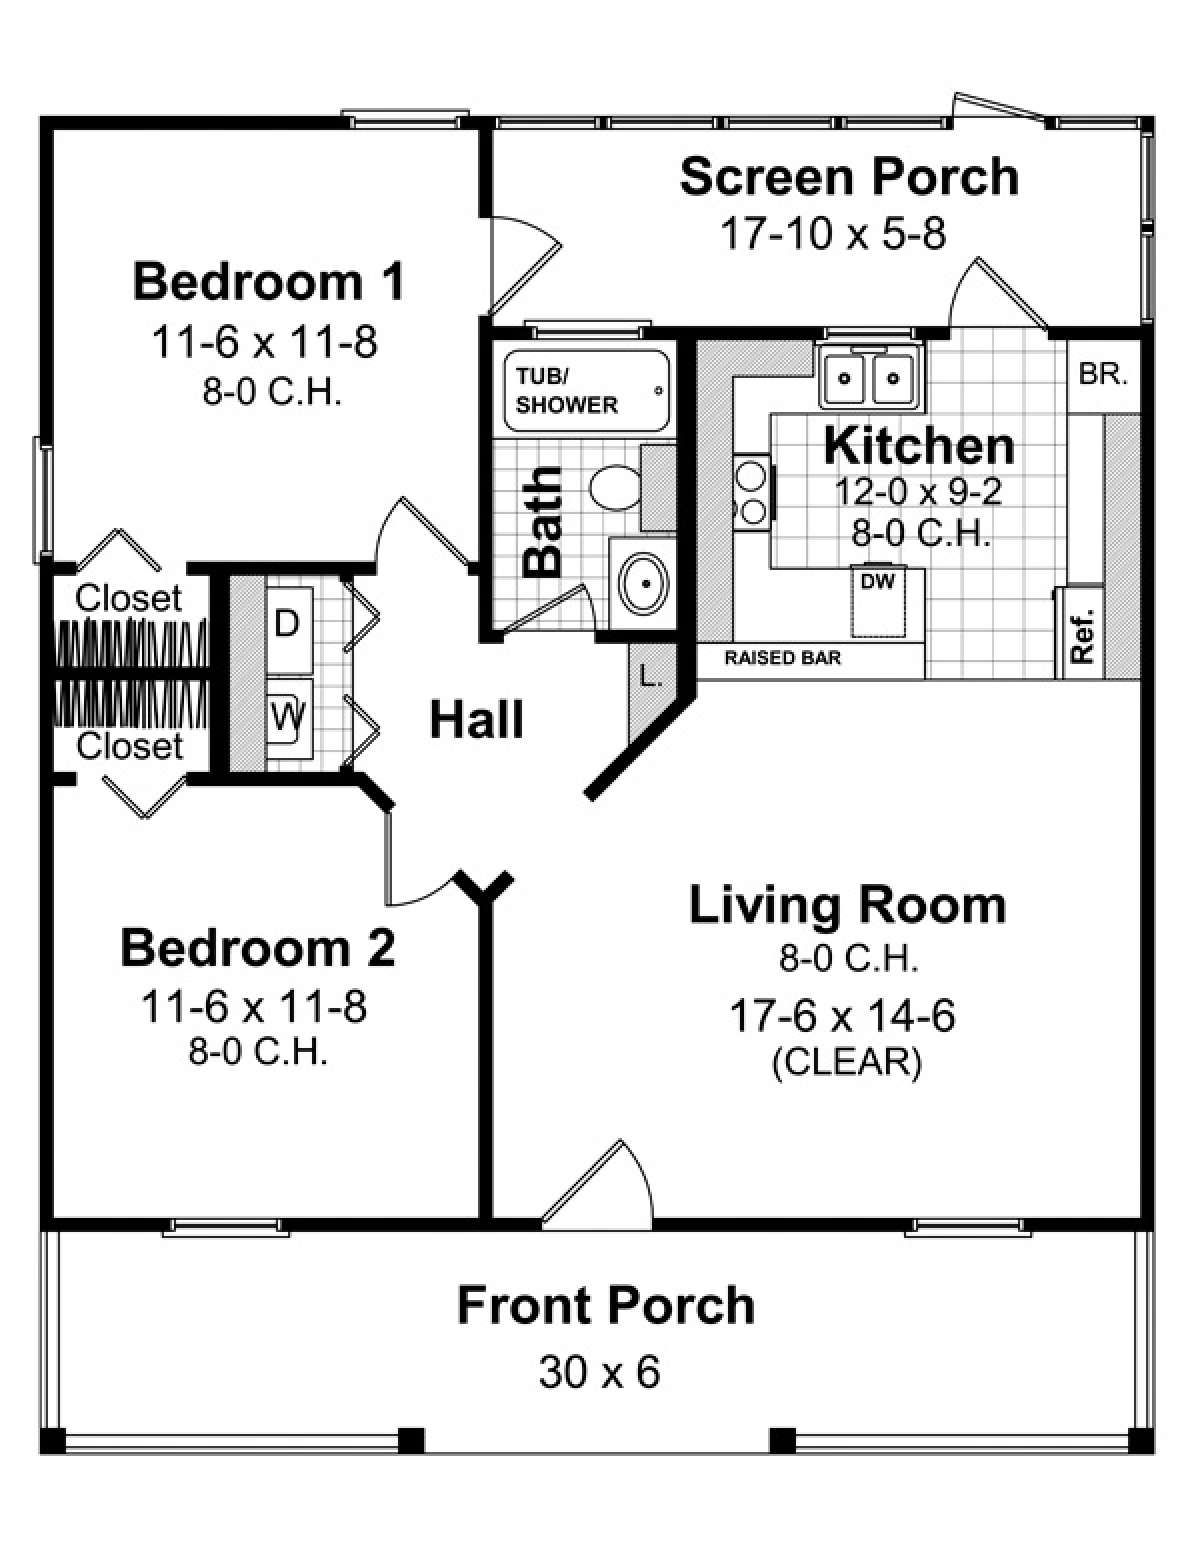 House Plan 348 00252 Southern Plan 800 Square Feet 2 Bedrooms 1 Bathroom House Floor Plans Cabin Floor Plans 800 Sq Ft House